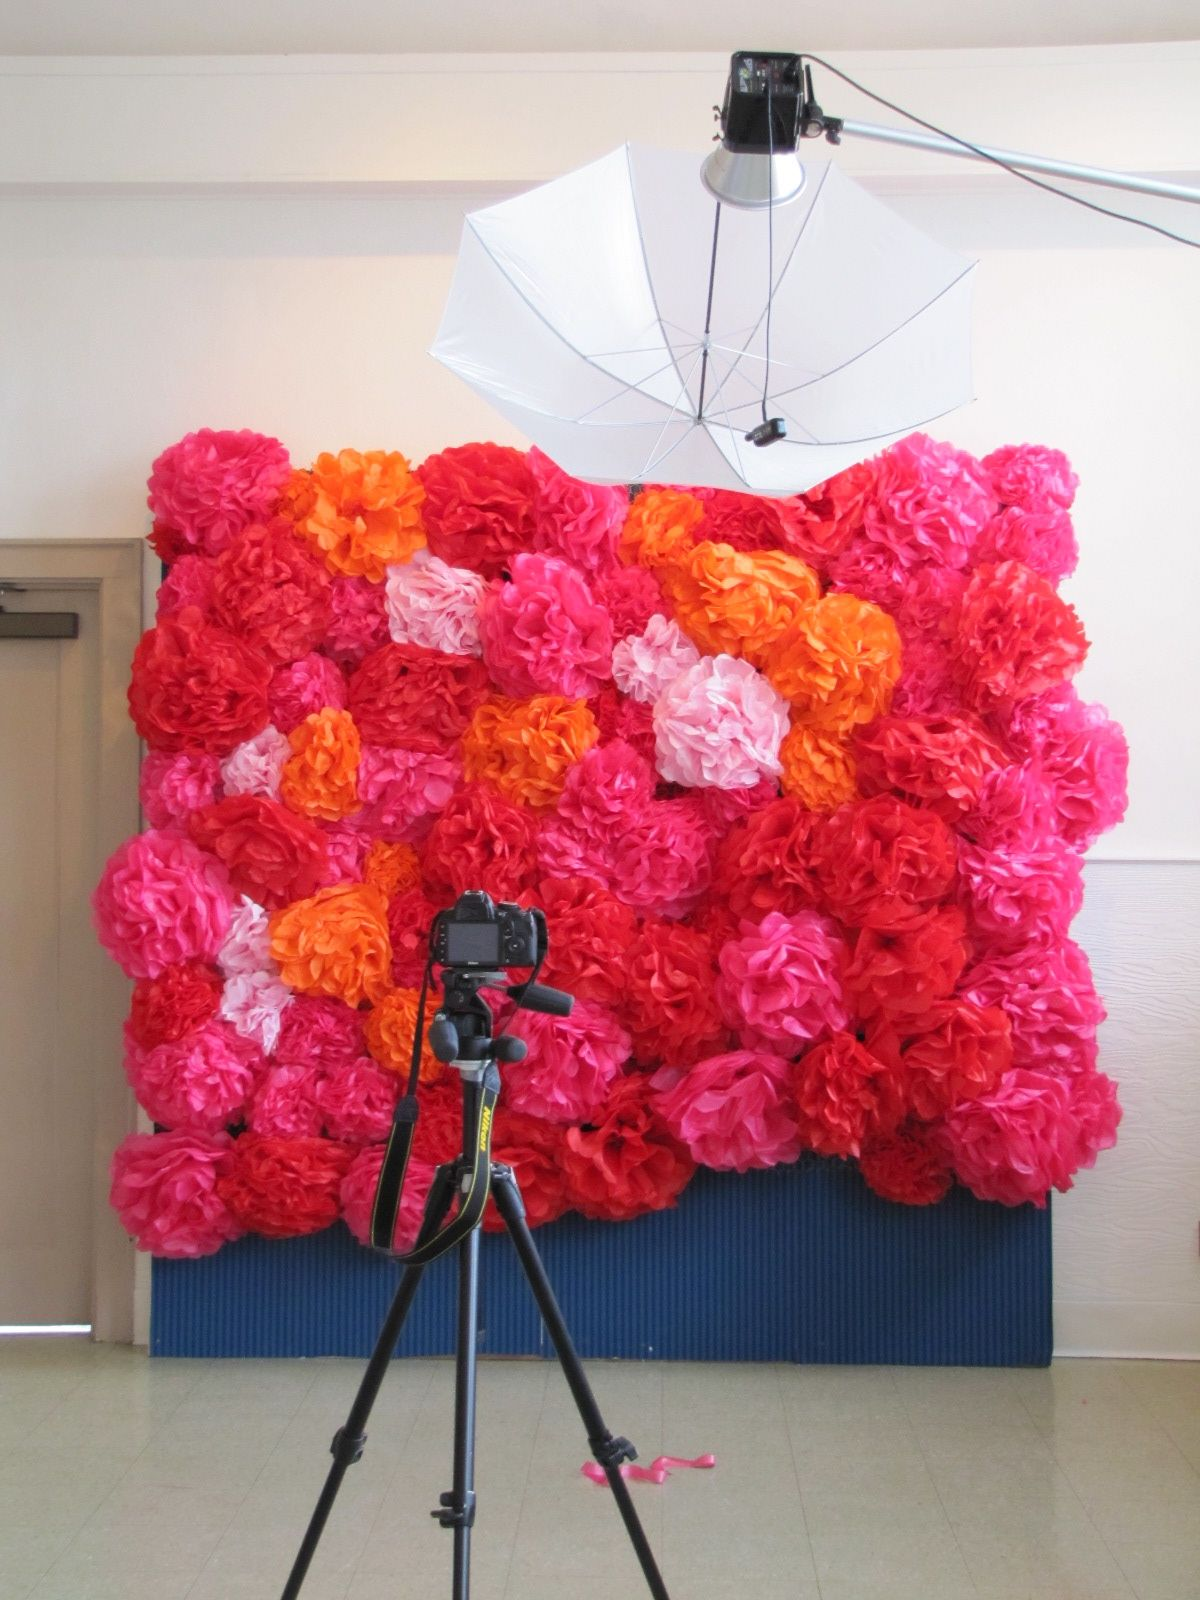 Tissue Paper Designs Tissue Paper Bouquet Photography Tips And Tricks